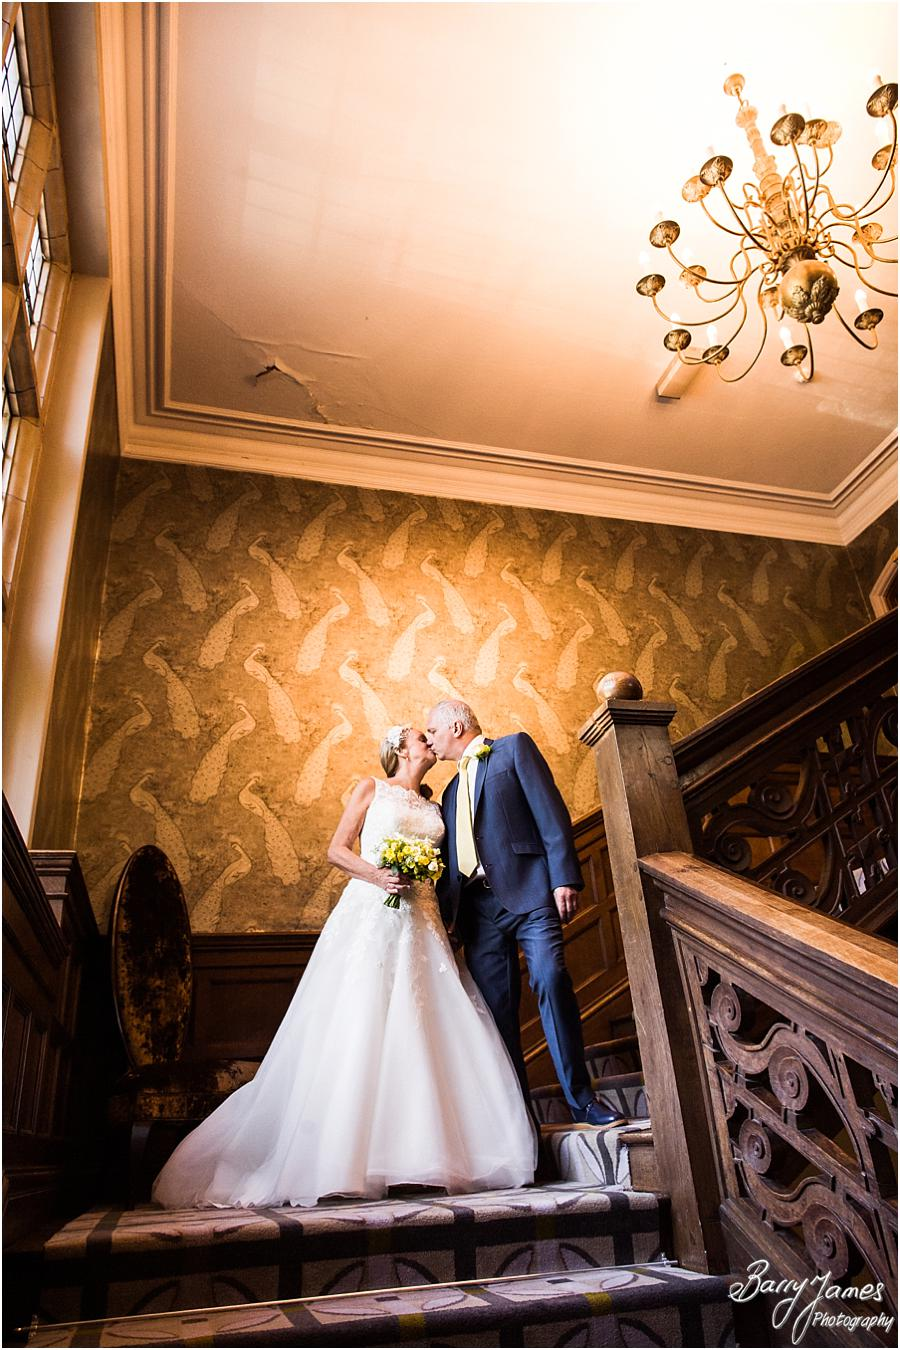 Red Rose Wedding Dresses Sutton Coldfield : Sutton coldfield by wedding photographer barry james